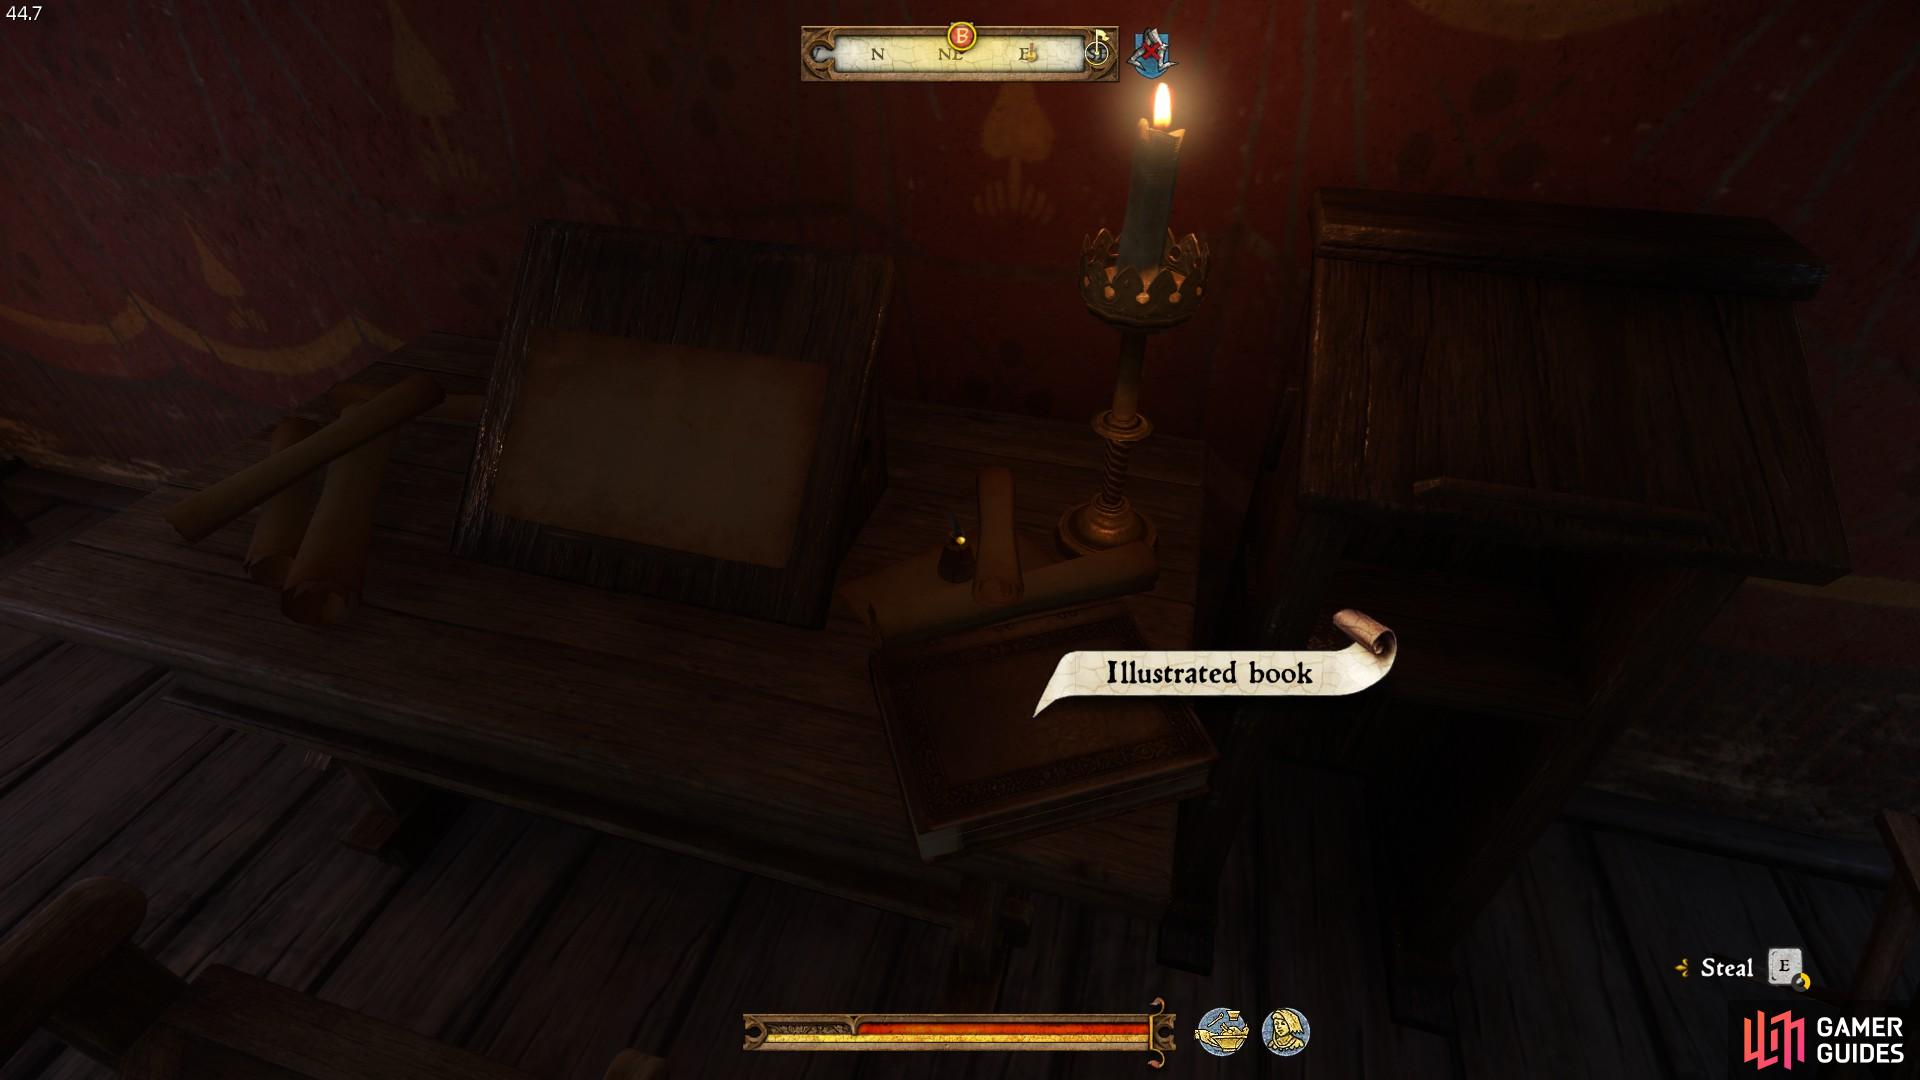 The book is located on the table directly in front of the doorway.